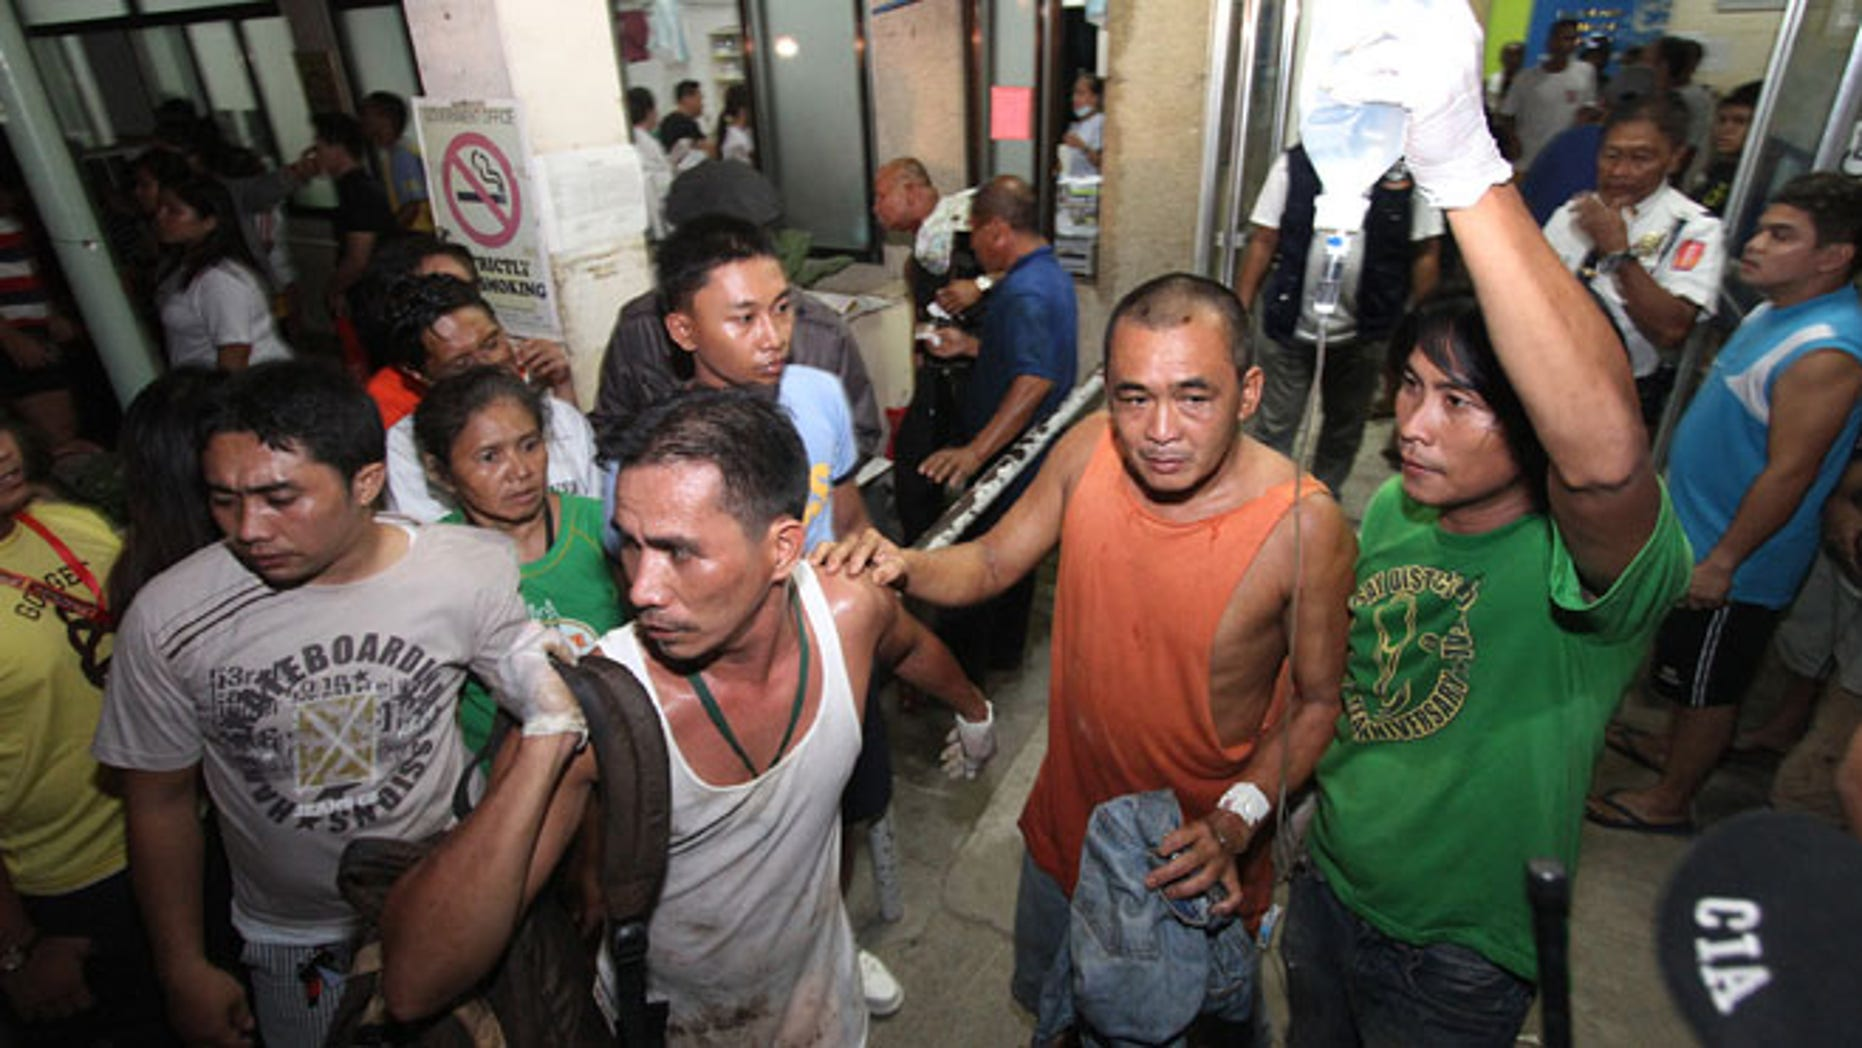 Aug 16, 2013: A survivor goes out of a hospital in Cebu, central Philippines. Passenger ferry MV Thomas Aquinas with nearly 700 people aboard sank near the central Philippine port of Cebu on Friday night after colliding with a cargo vessel, and a survivor said he saw bodies in the sea.